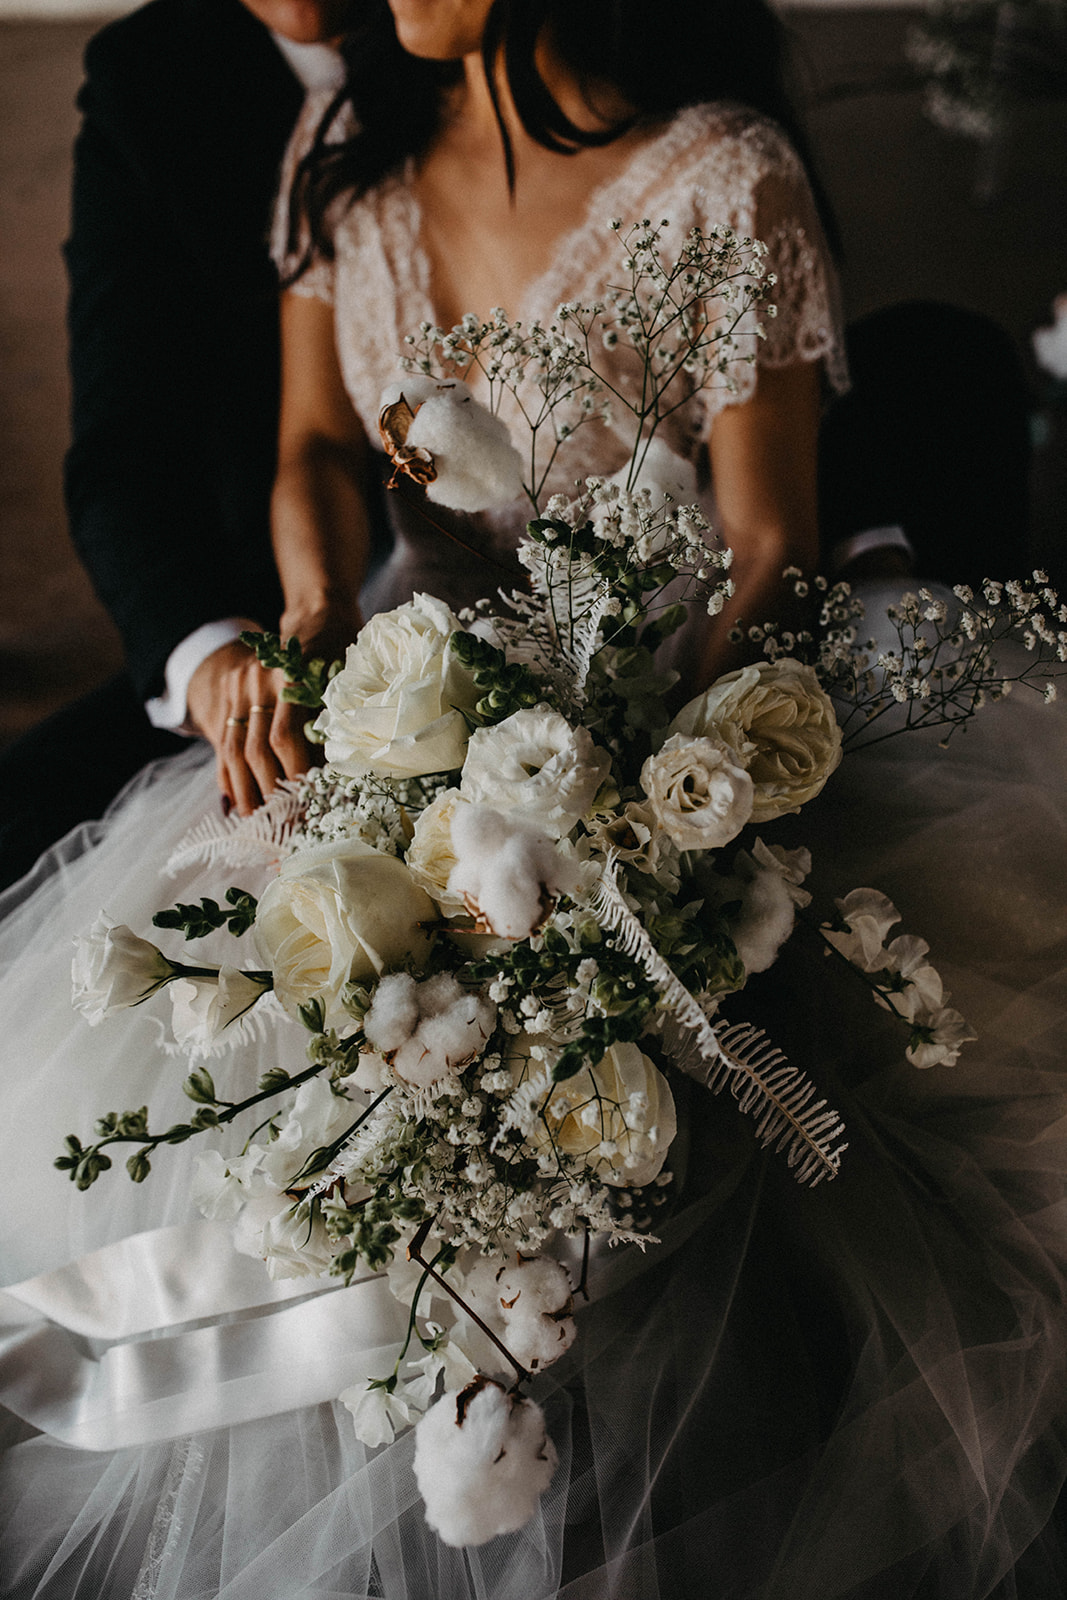 Modern Babies Breath Wedding Inspiration - Arizona florist Phoenix scottsdale Mesa chandler Sedona Prescott - Baby's Breath Bouquet with White Roses, Cotton, and Lisianthus